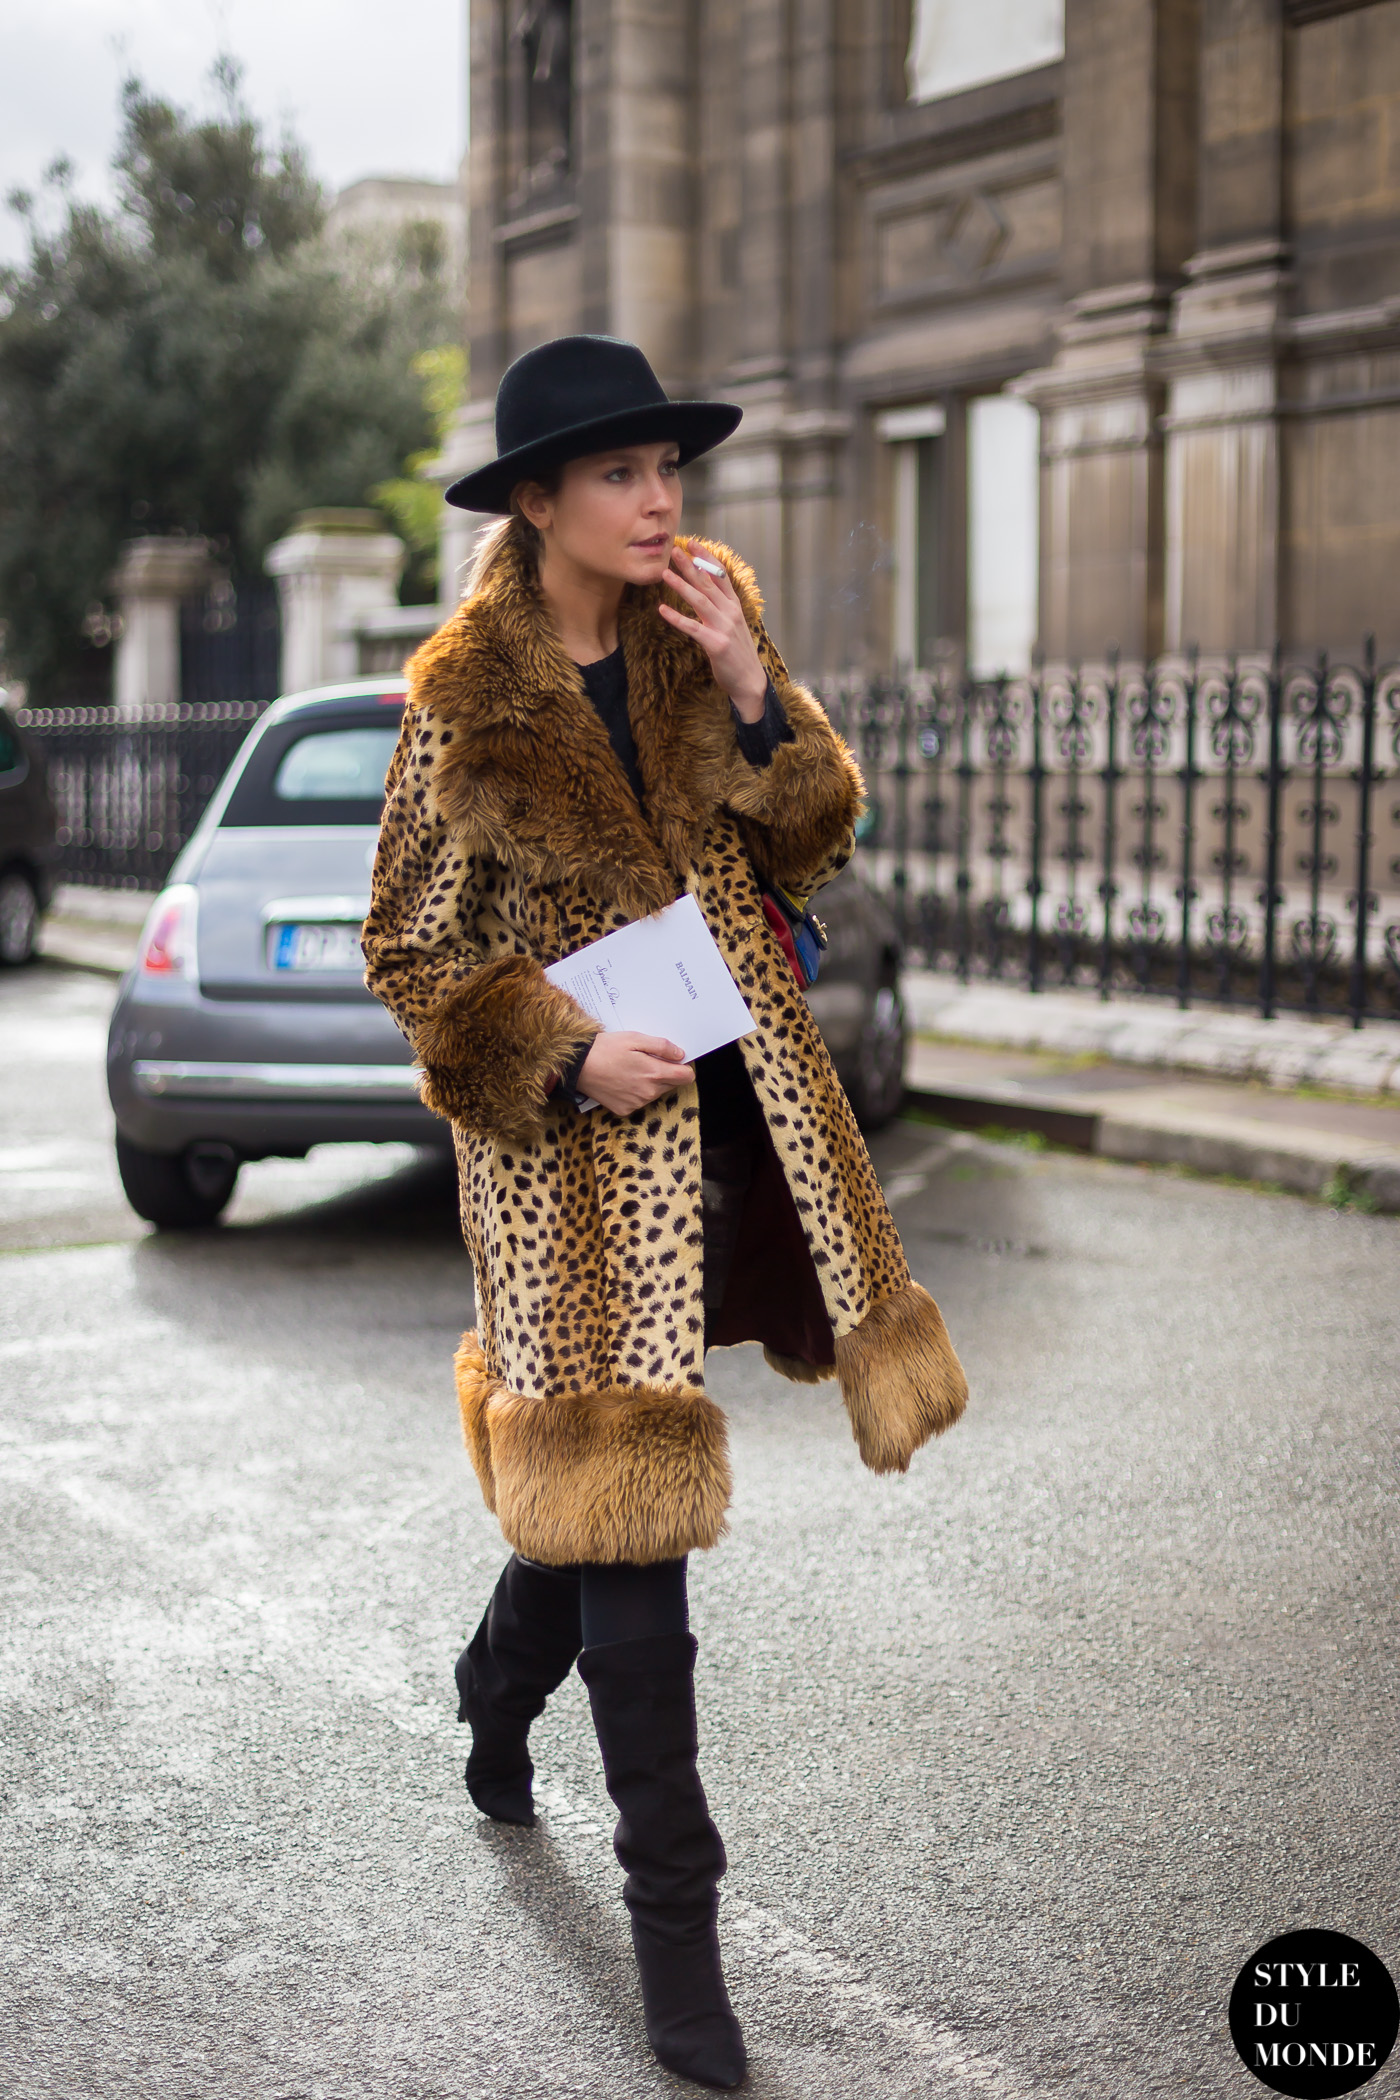 2014 Fashion Trends For Teens 2014 2015: Paris Fashion Week FW 2014 Street Style: Sophie Pera